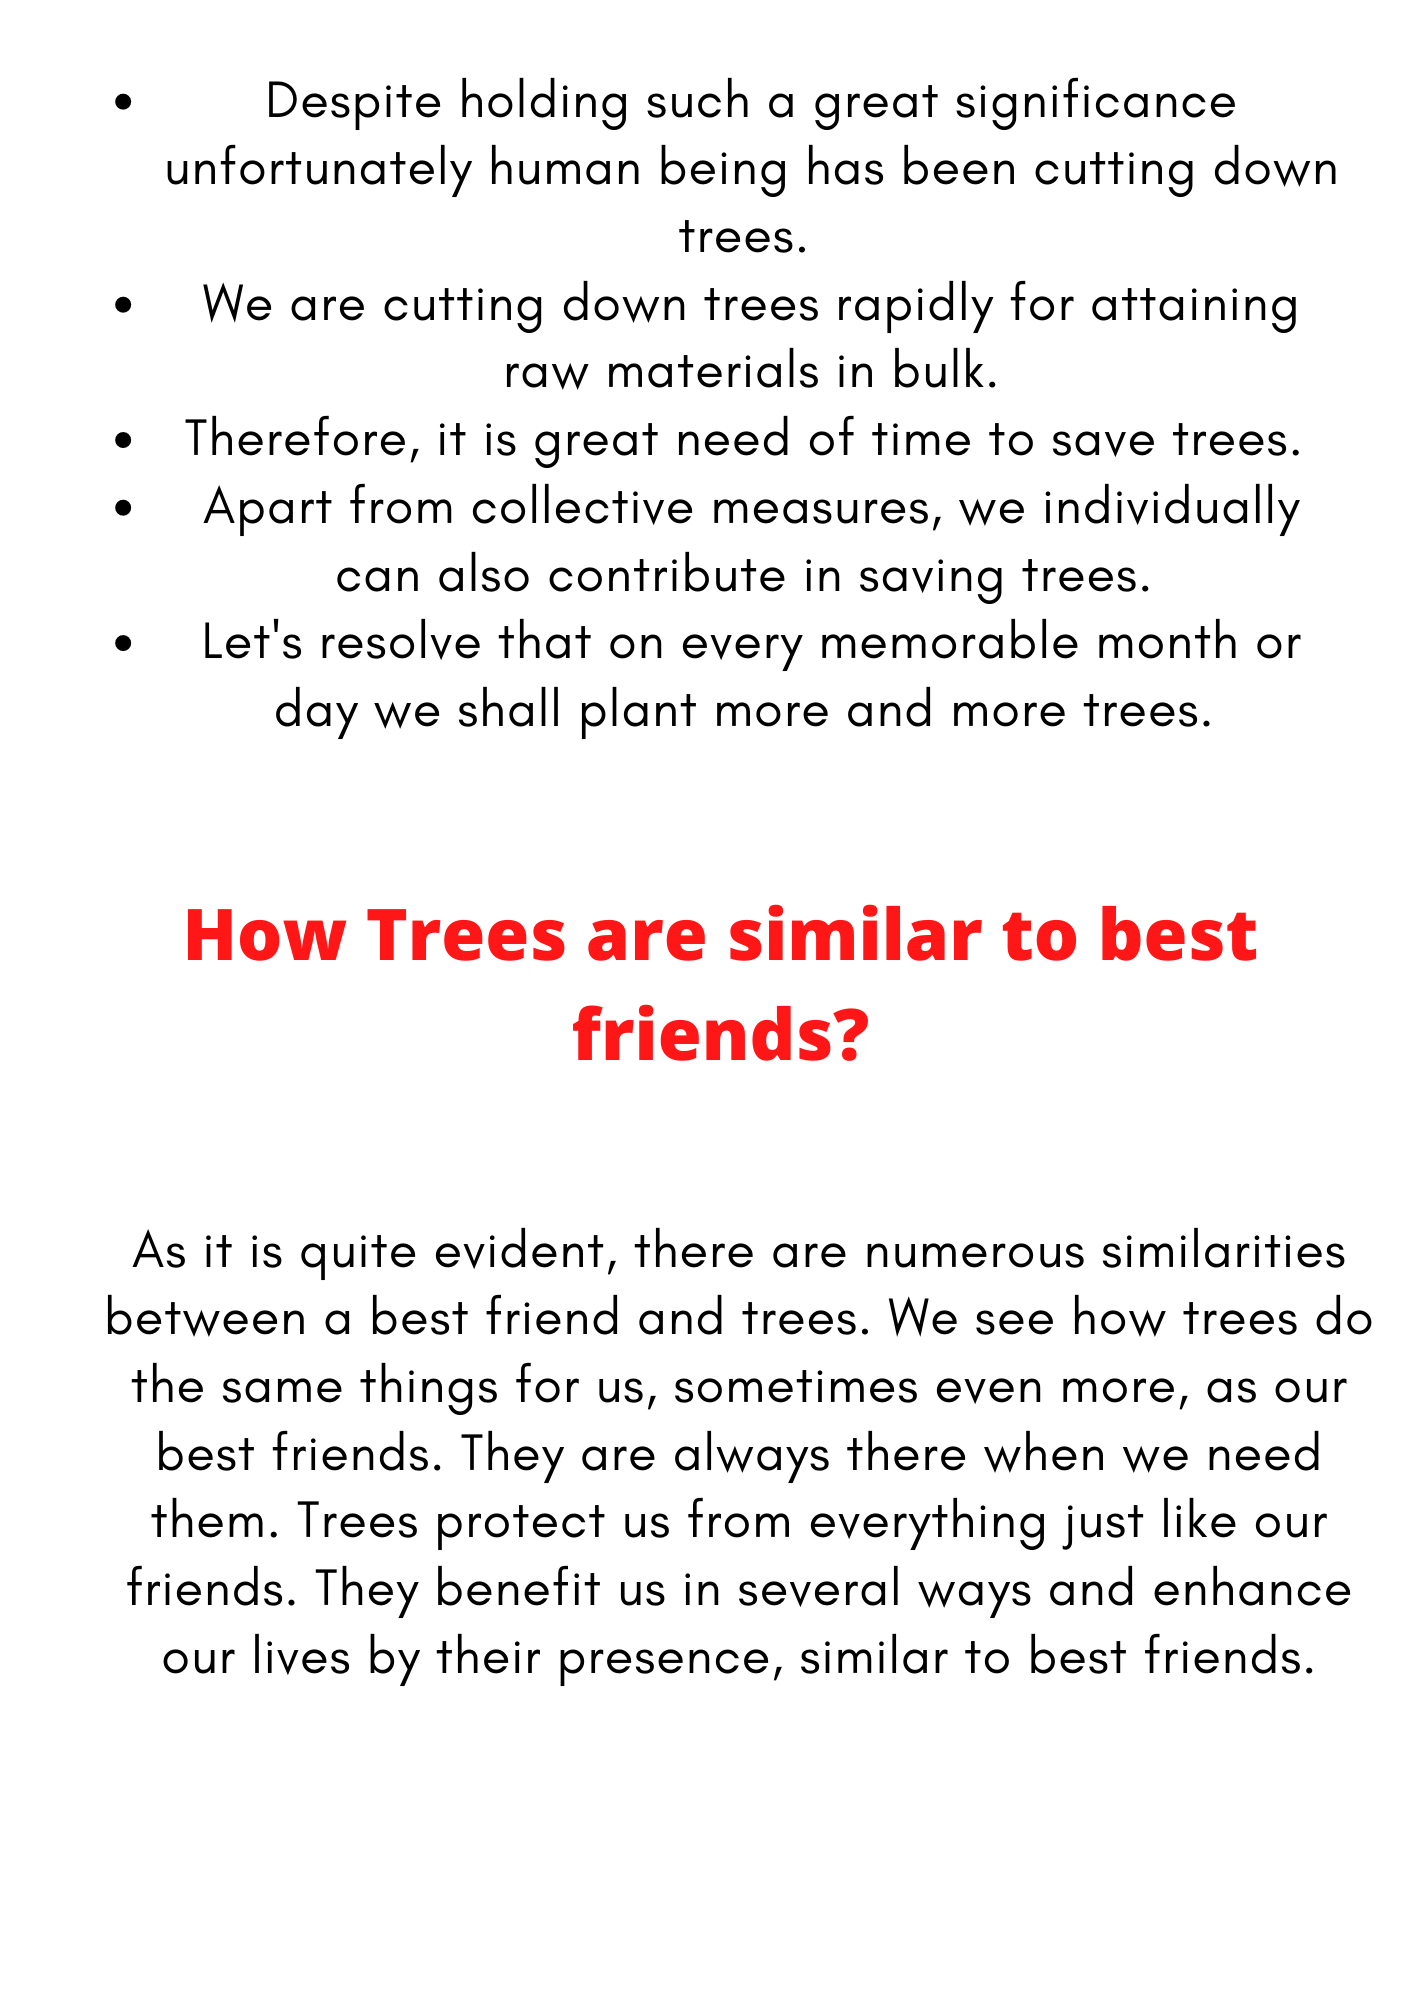 10 points on Trees are our best friends